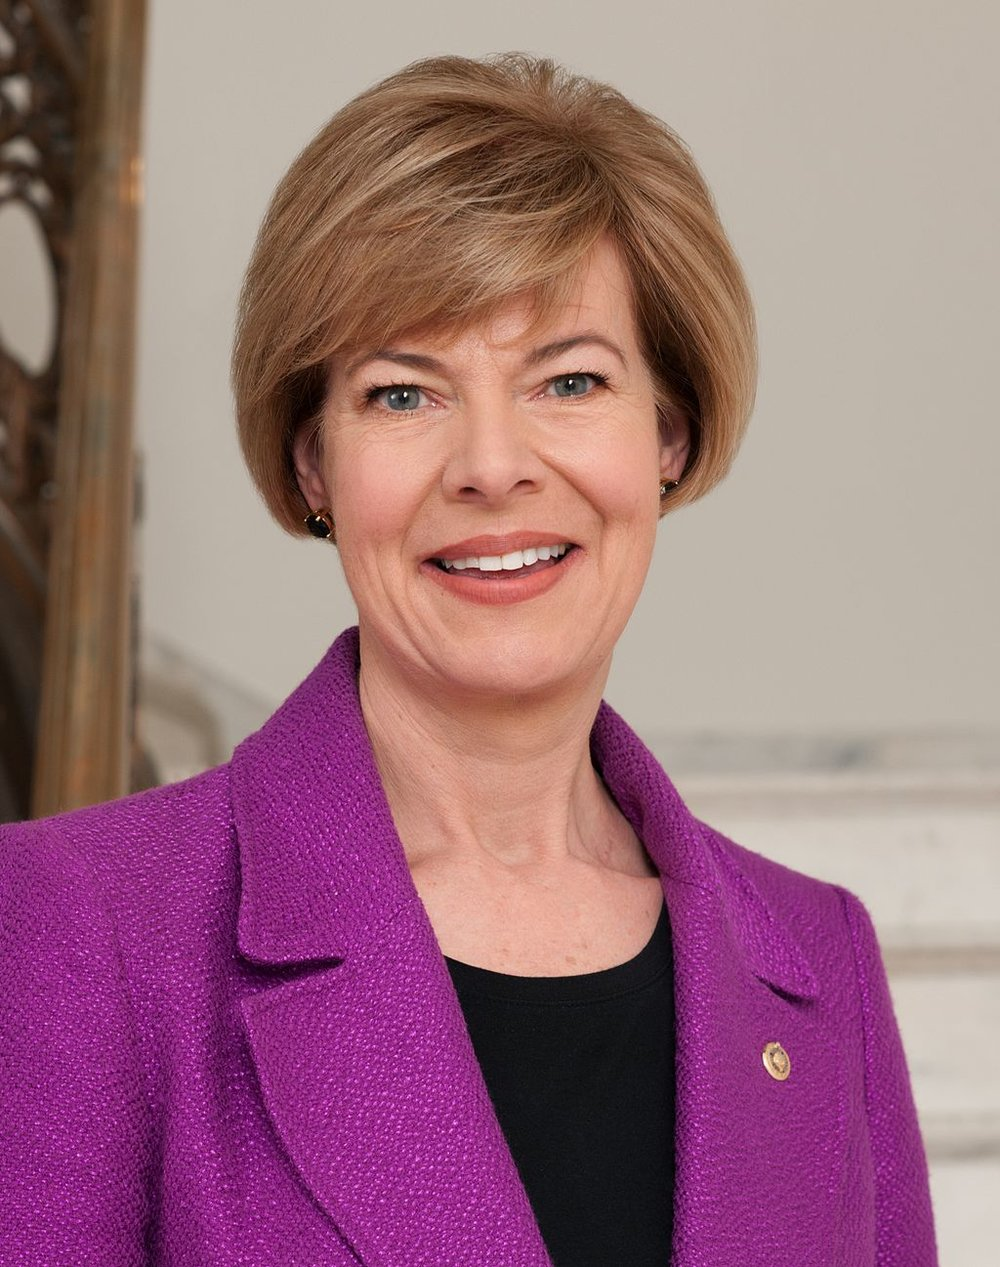 "Senator Tammy Baldwin U.S. Senate - WI Tammy Baldwin is the junior United States Senator from Wisconsin and a member of the Democratic Party. She is the first woman elected to represent Wisconsin in the Senate and the first openly gay U.S. Senator in history. She previously served as the U.S. Representative from Wisconsin's 2nd congressional district from 1999 to 2013, as well as serving three terms in the Wisconsin Assembly representing the 78th district. Baldwin defeated her Republican opponent, former Wisconsin Governor Tommy Thompson, in the 2012 U.S. Senate election. A self described ""proud progressive"", Tammy is considered on of the most liberal members in Congress. She is a staunch fighter for women and LGBT rights."